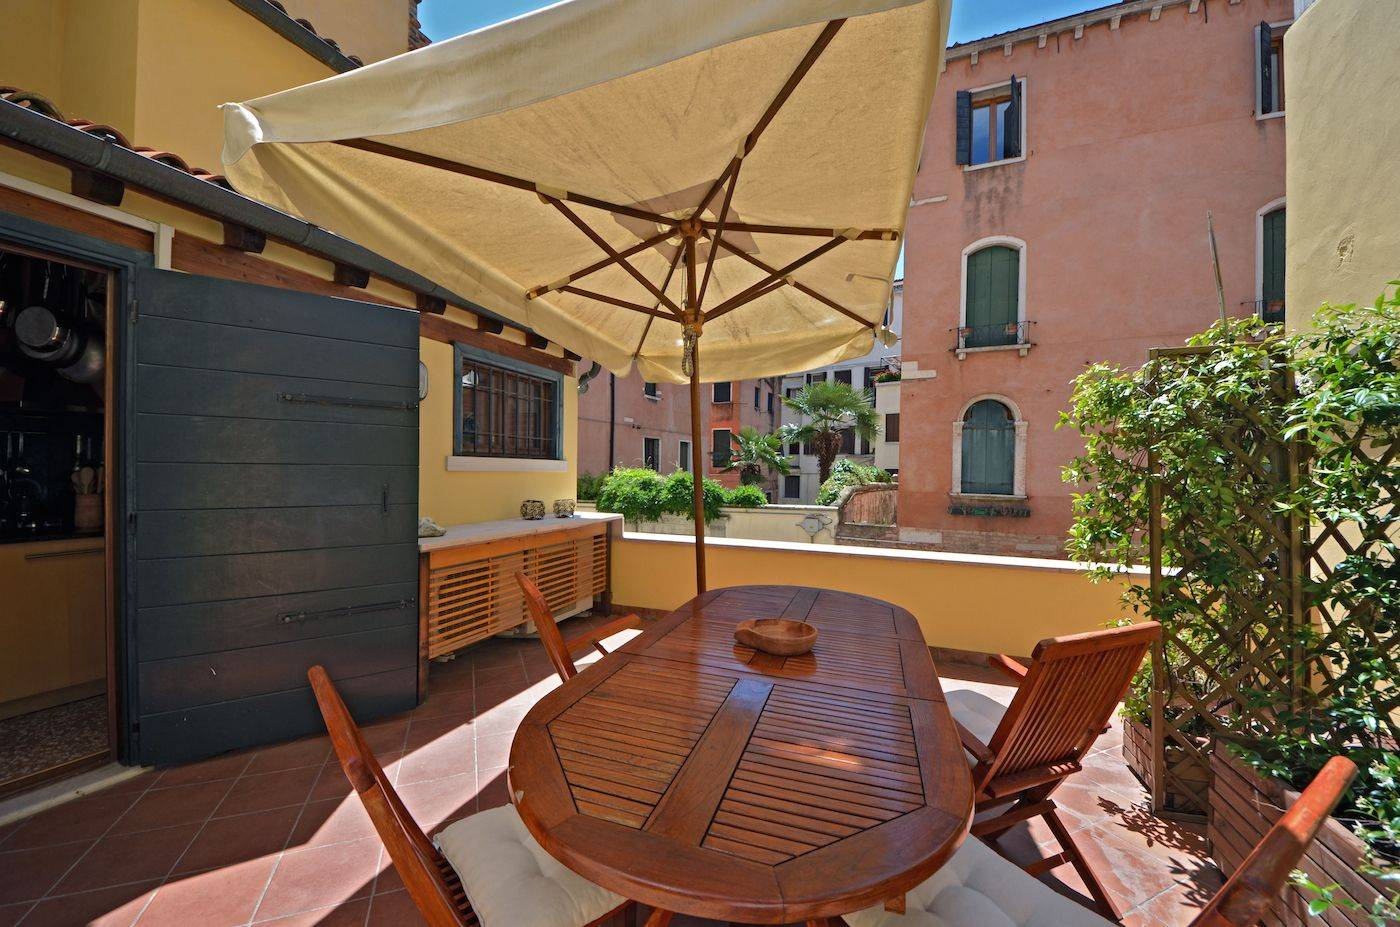 there is a table for up to 6 people and a large sun umbrella